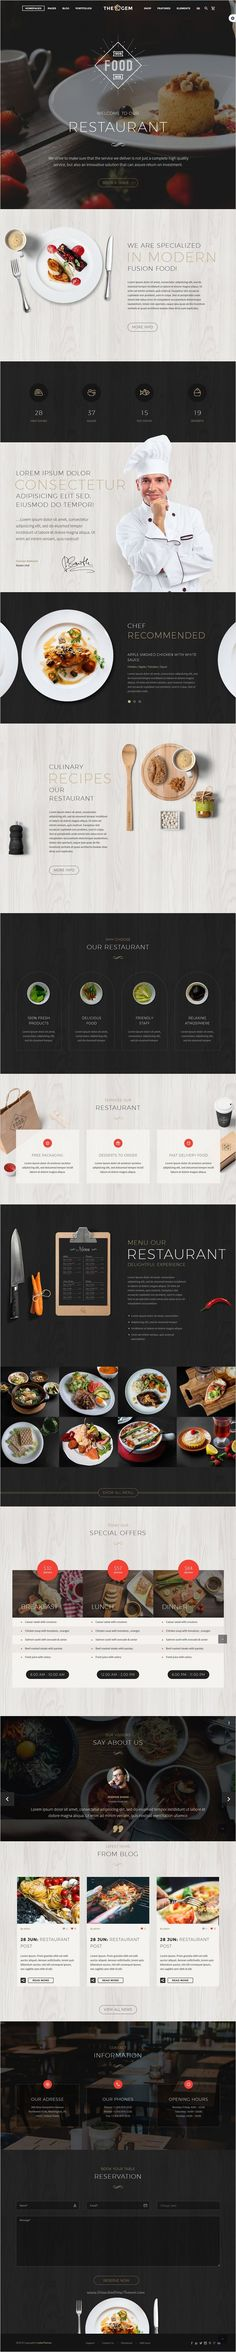 TheGem is a versatile #WordPress template with modern creative design for #restaurant business website with 40+ stunning homepage layouts download now➩